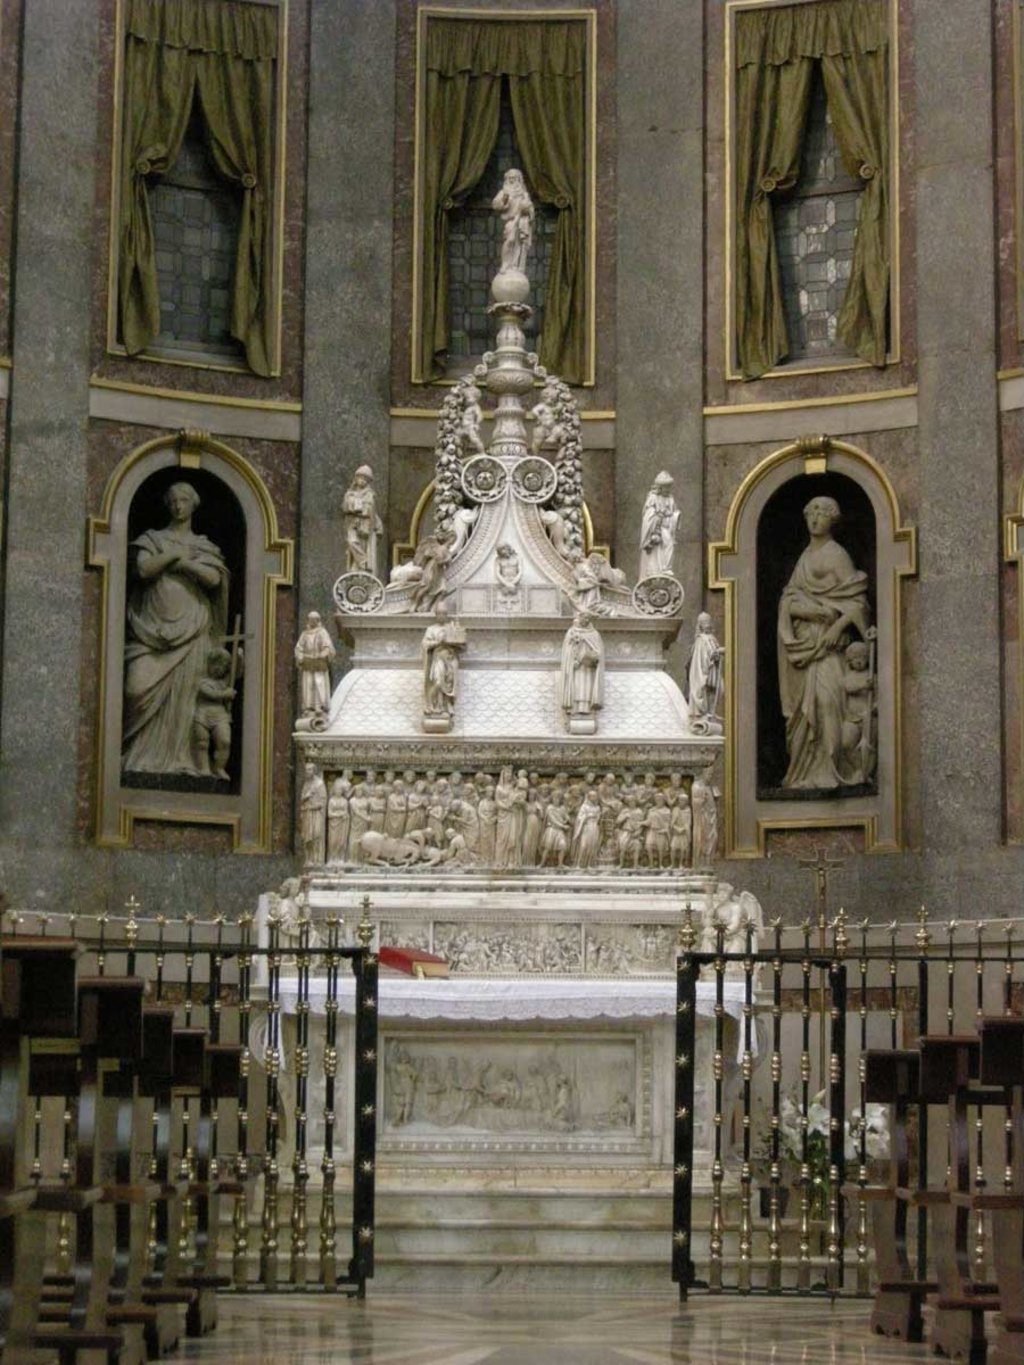 L'Arca di San Domenico - By Sailko  , via Wikimedia Commons